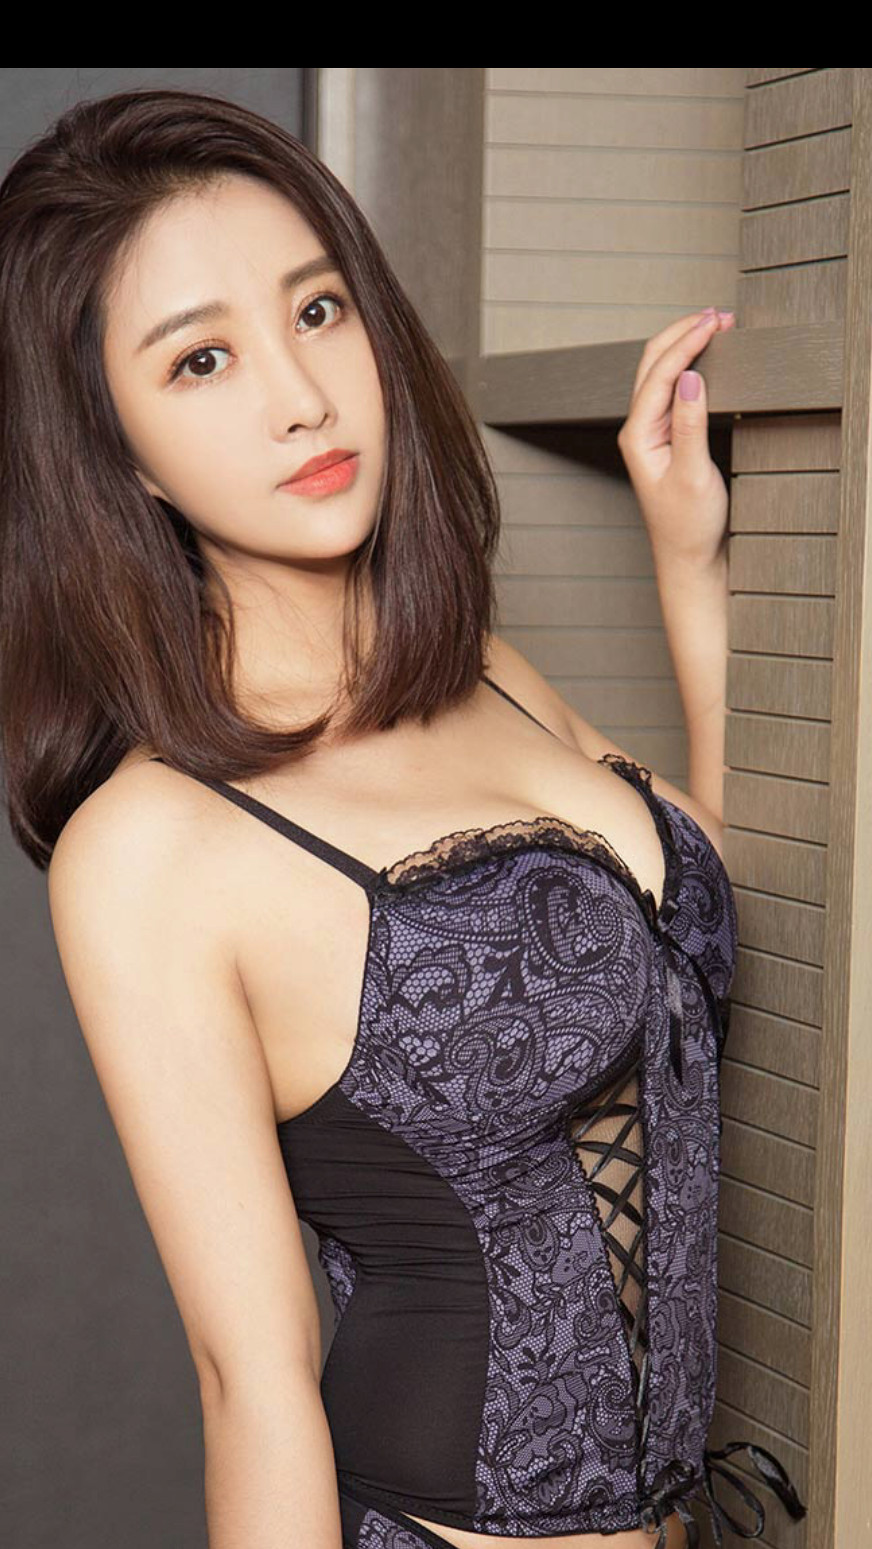 Asian and Western escorts, hongkong based escort agencies,escorts agency hong kong